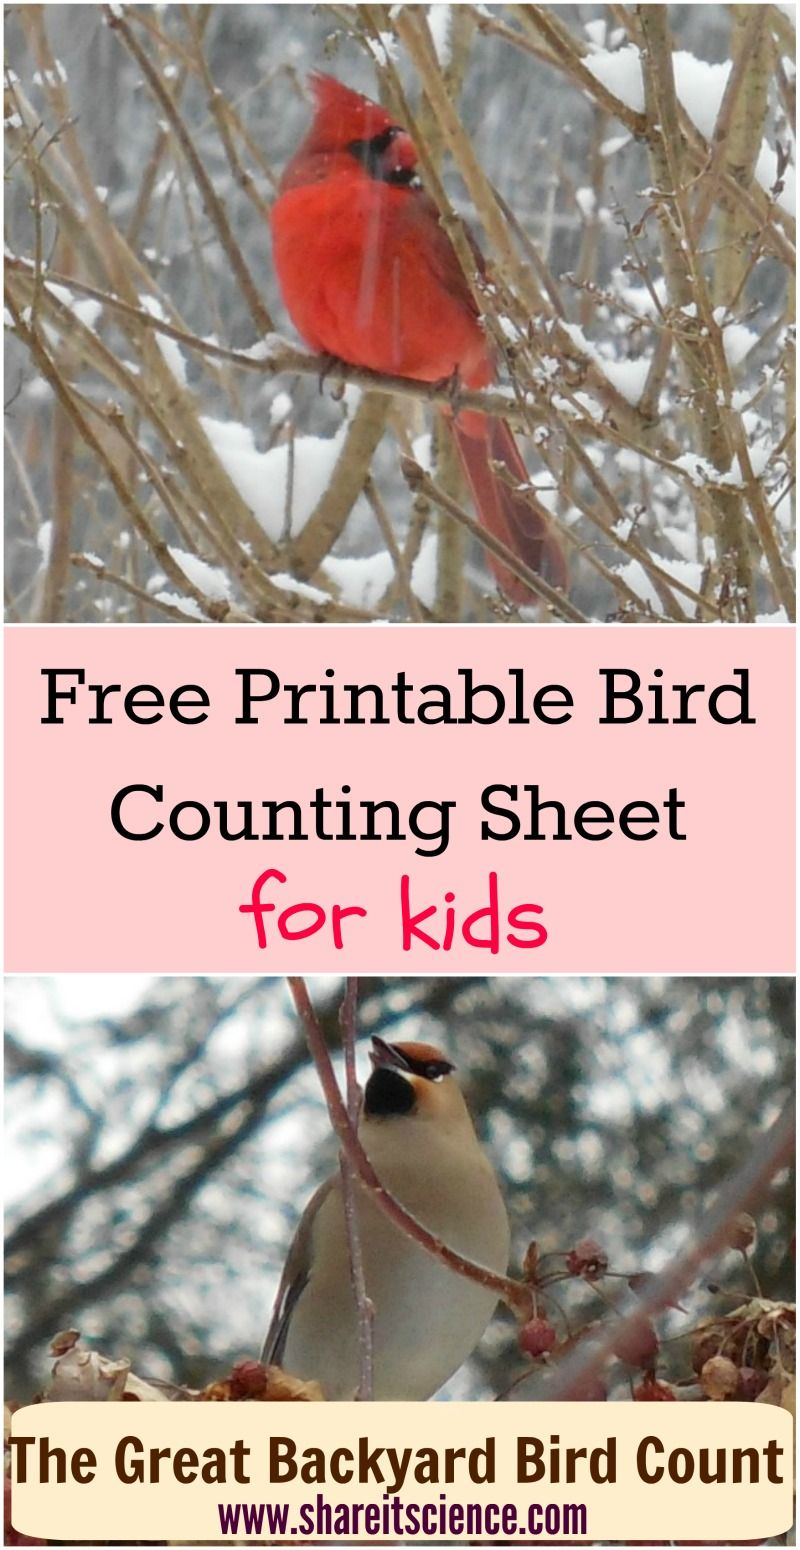 Download this freebie printable to help your young birders ...